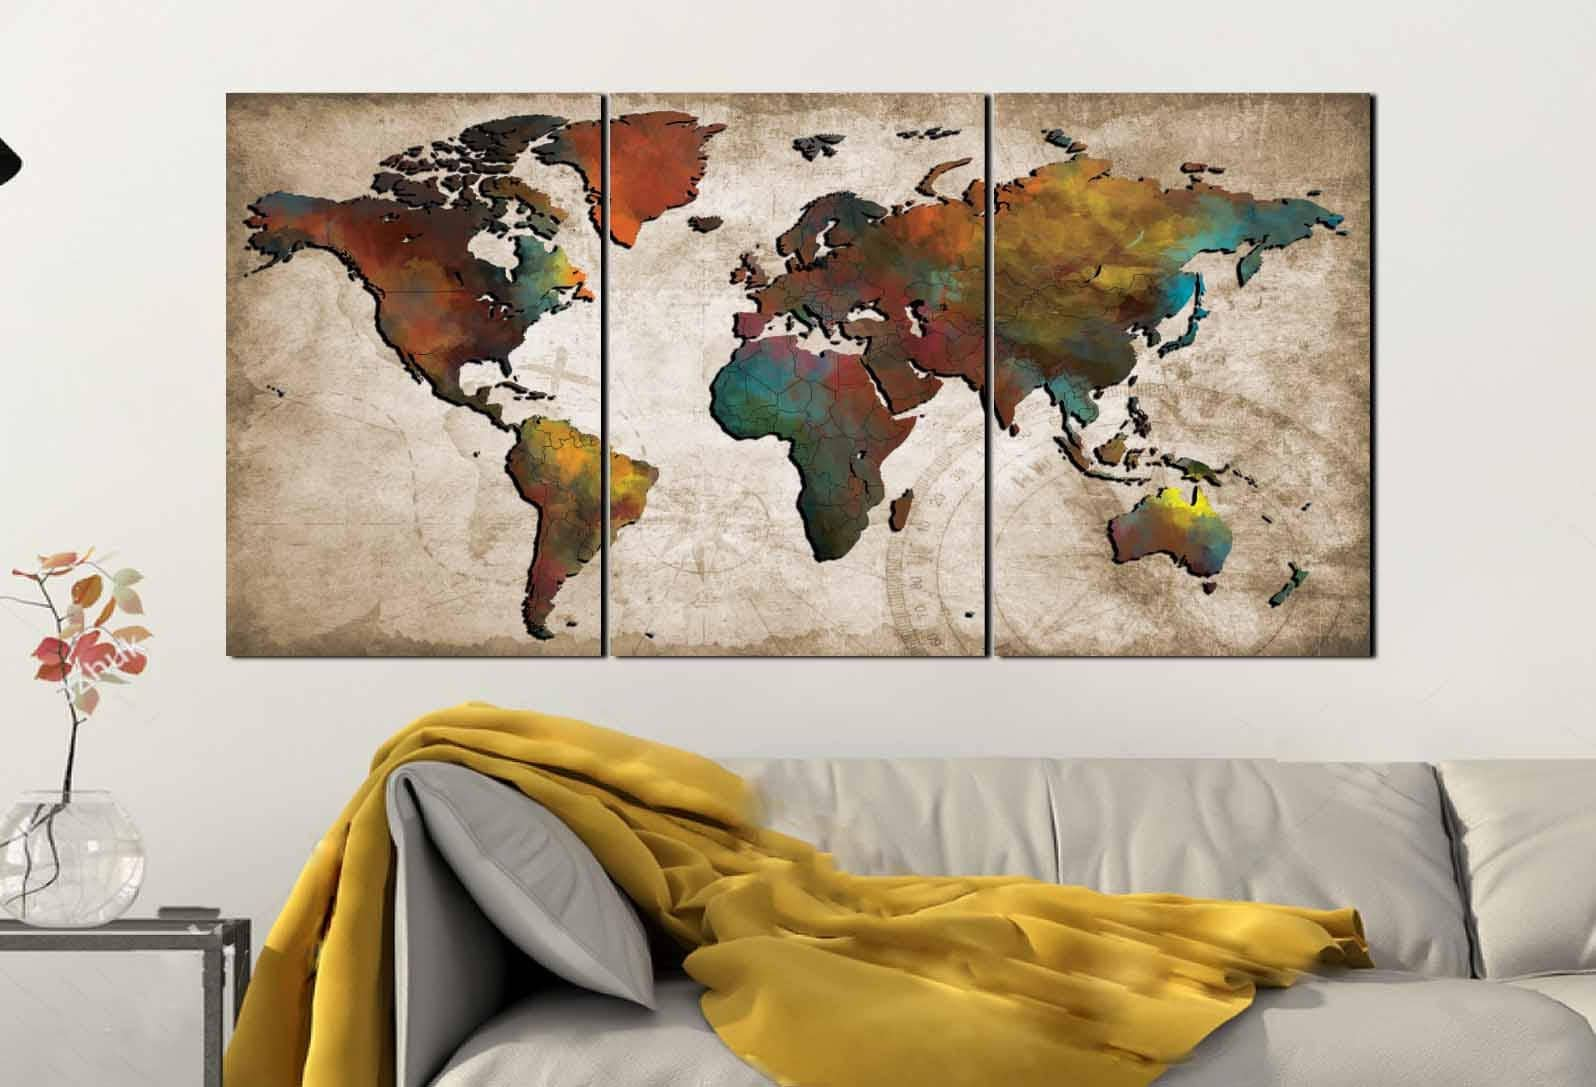 world map wall artabstract push pin mapcolorful world mapworld map posterworld map artworld map maptravel map posterart